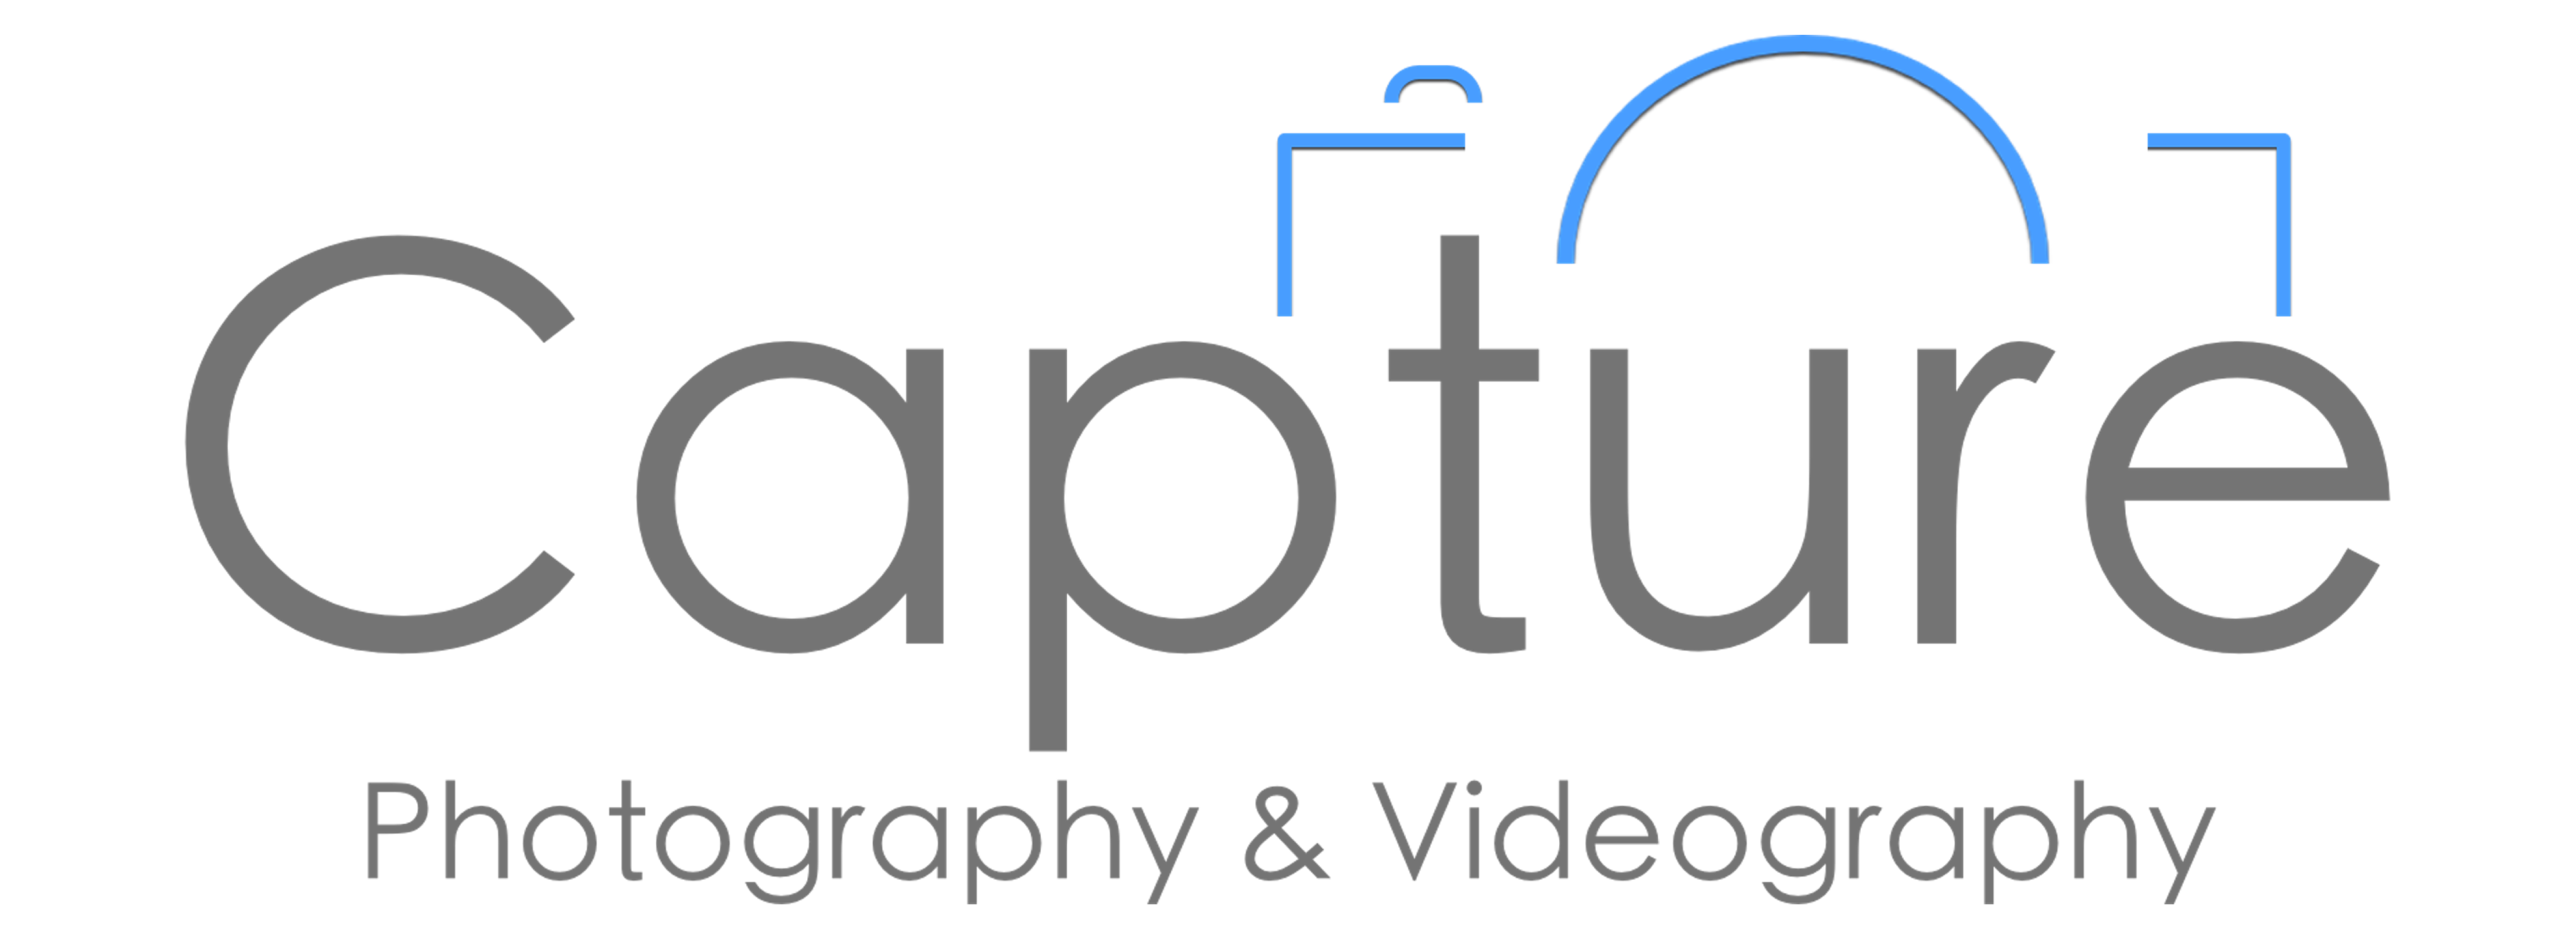 Capture Photography and Videography